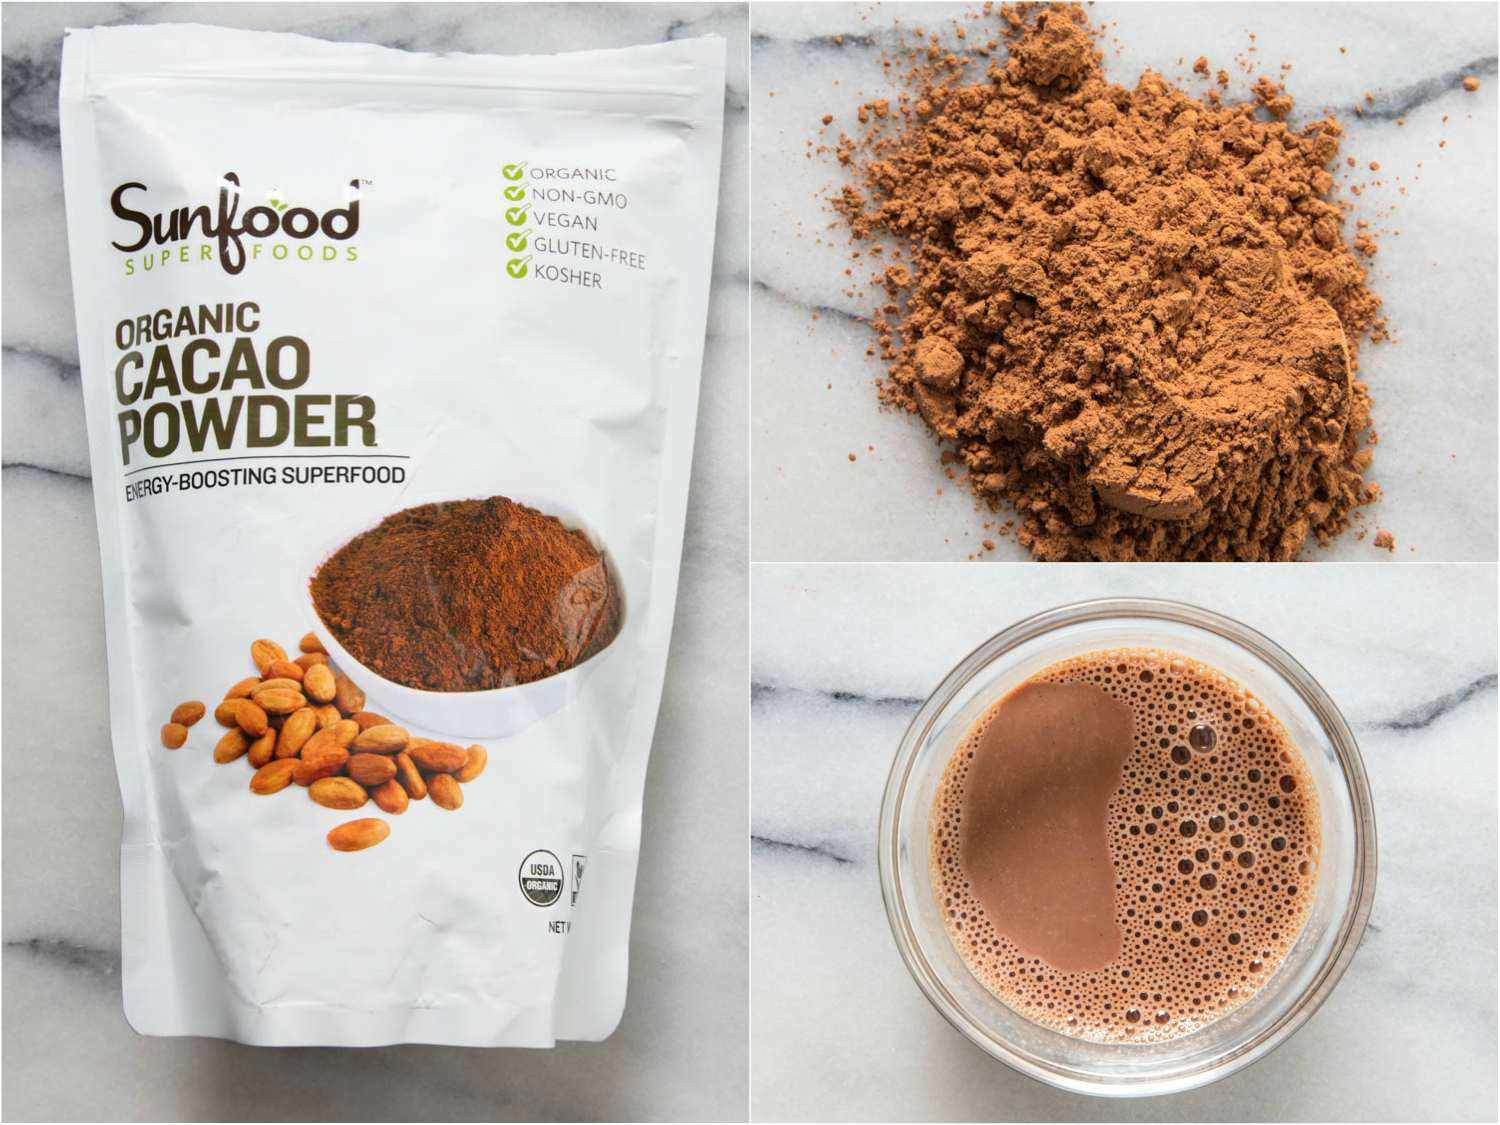 Collage of Sunfood cocoa powder, by itself, in hot cocoa, and in the packaging